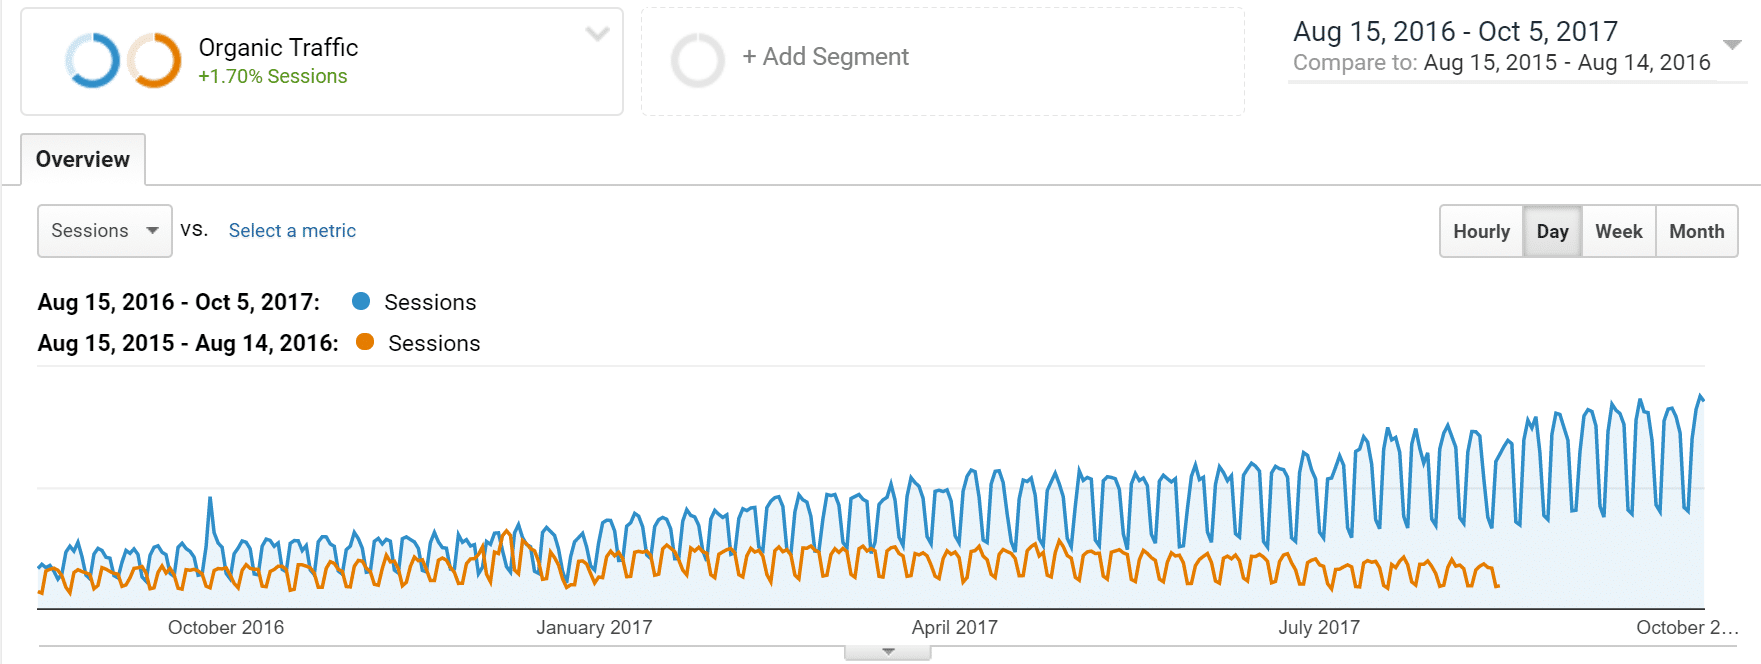 Organic traffic increase in 13 months